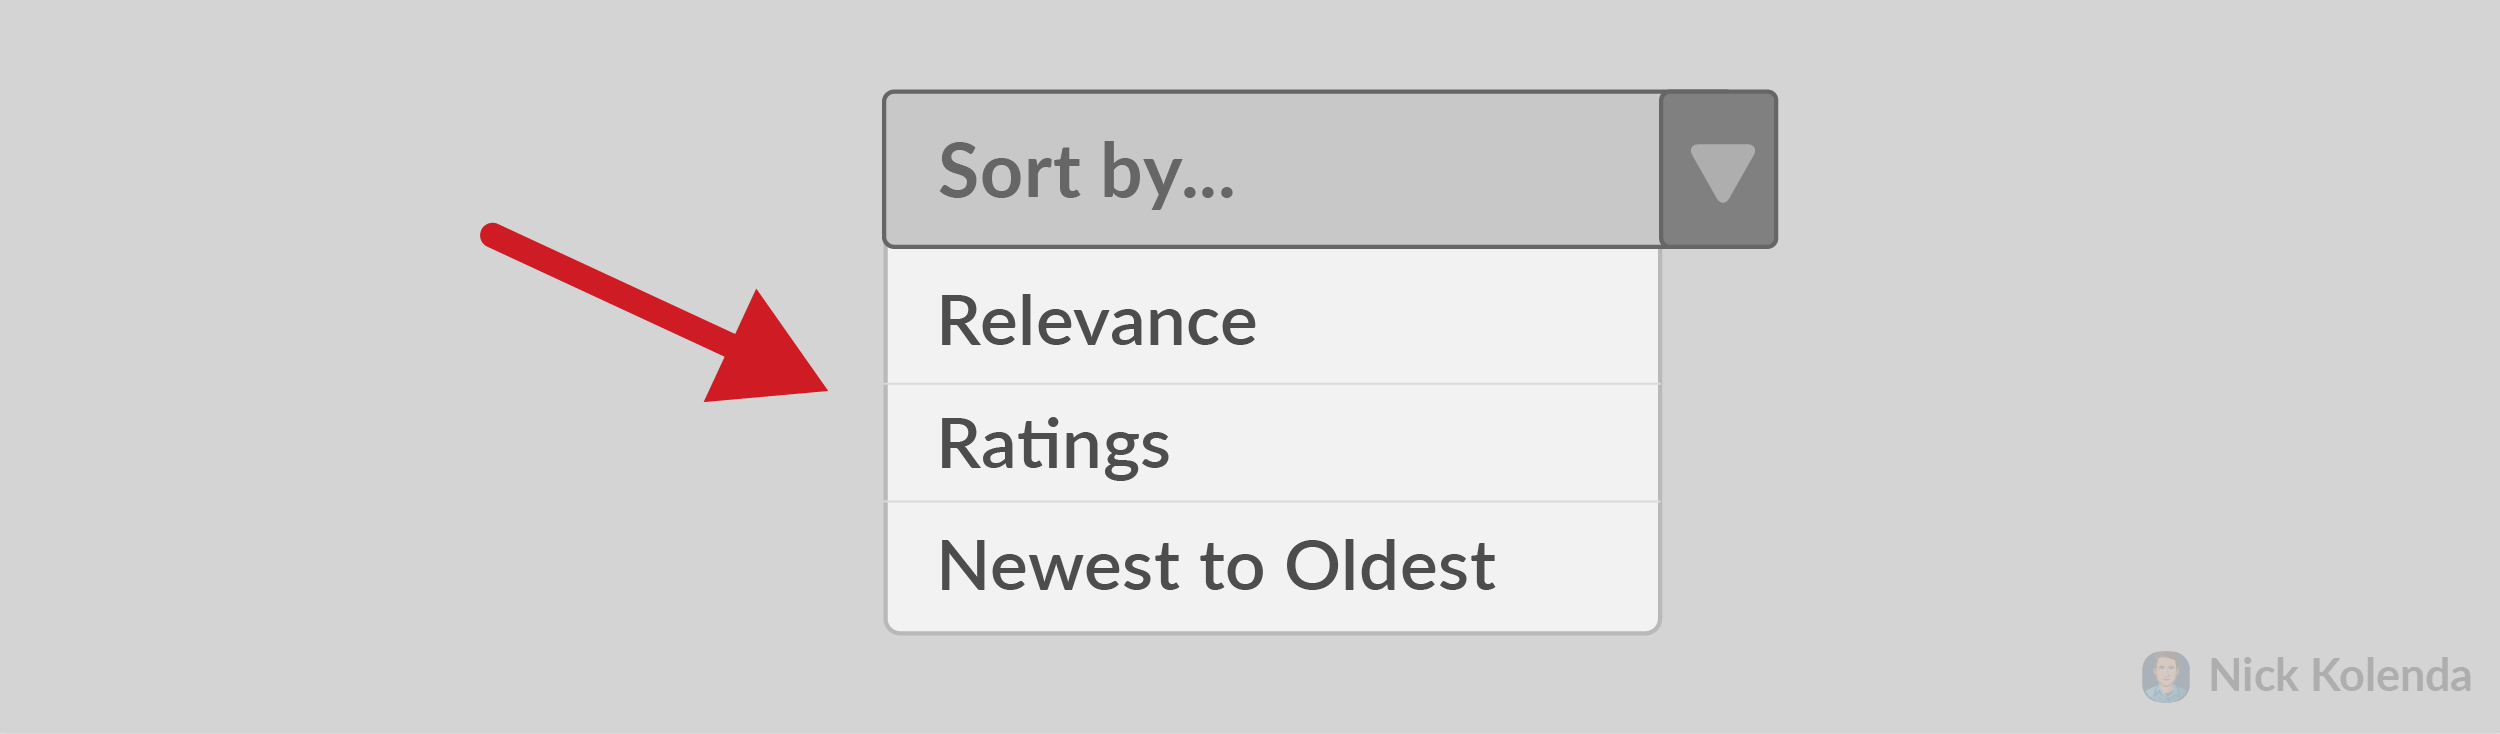 Sort by: Relevance, Ratings, Oldest to Newest